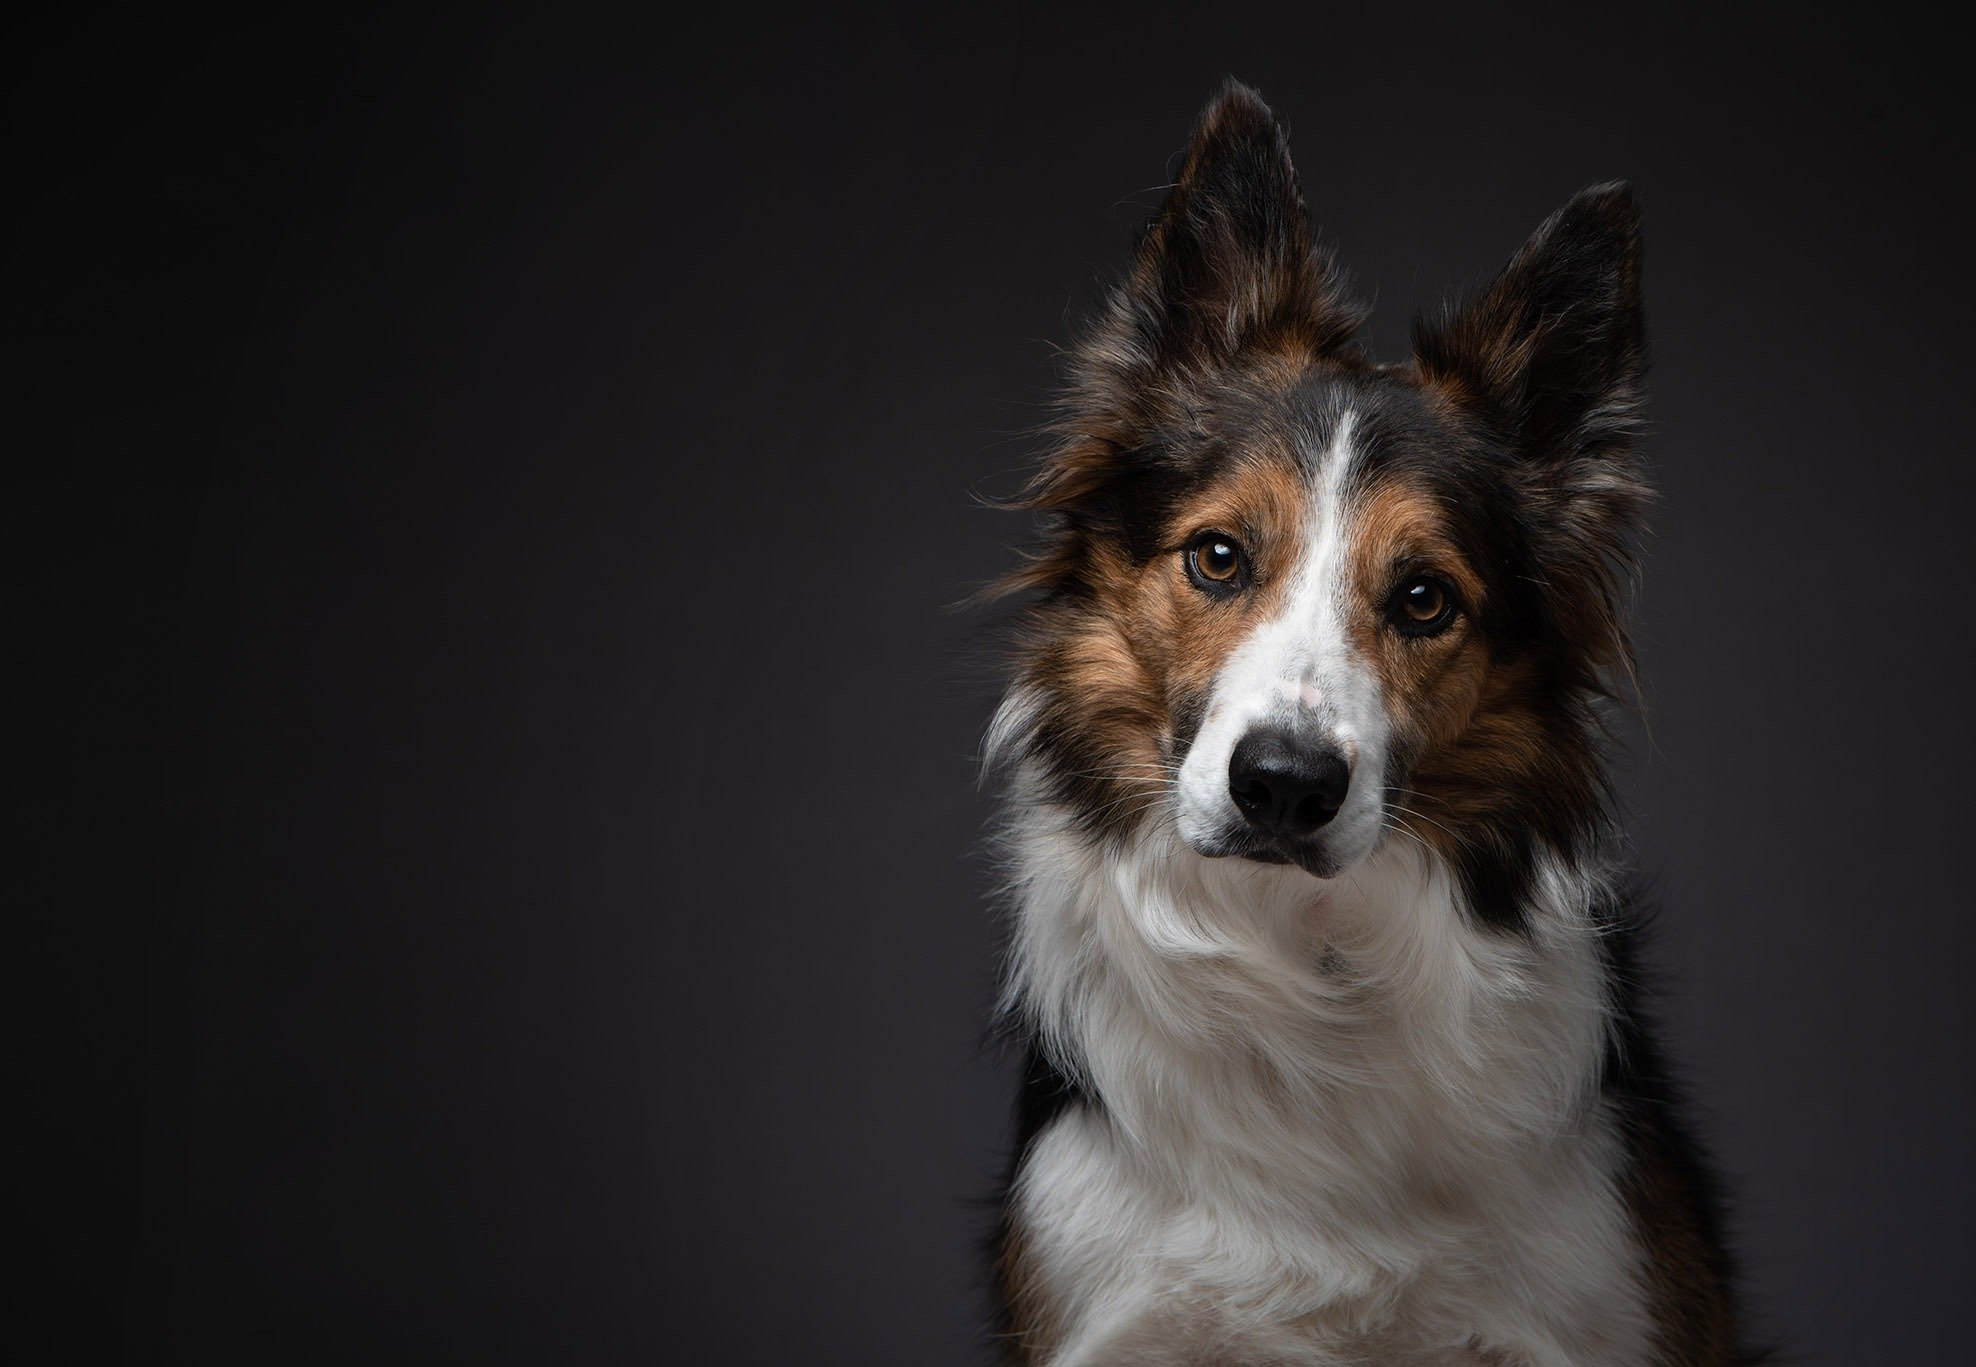 Serious Dog Portraits